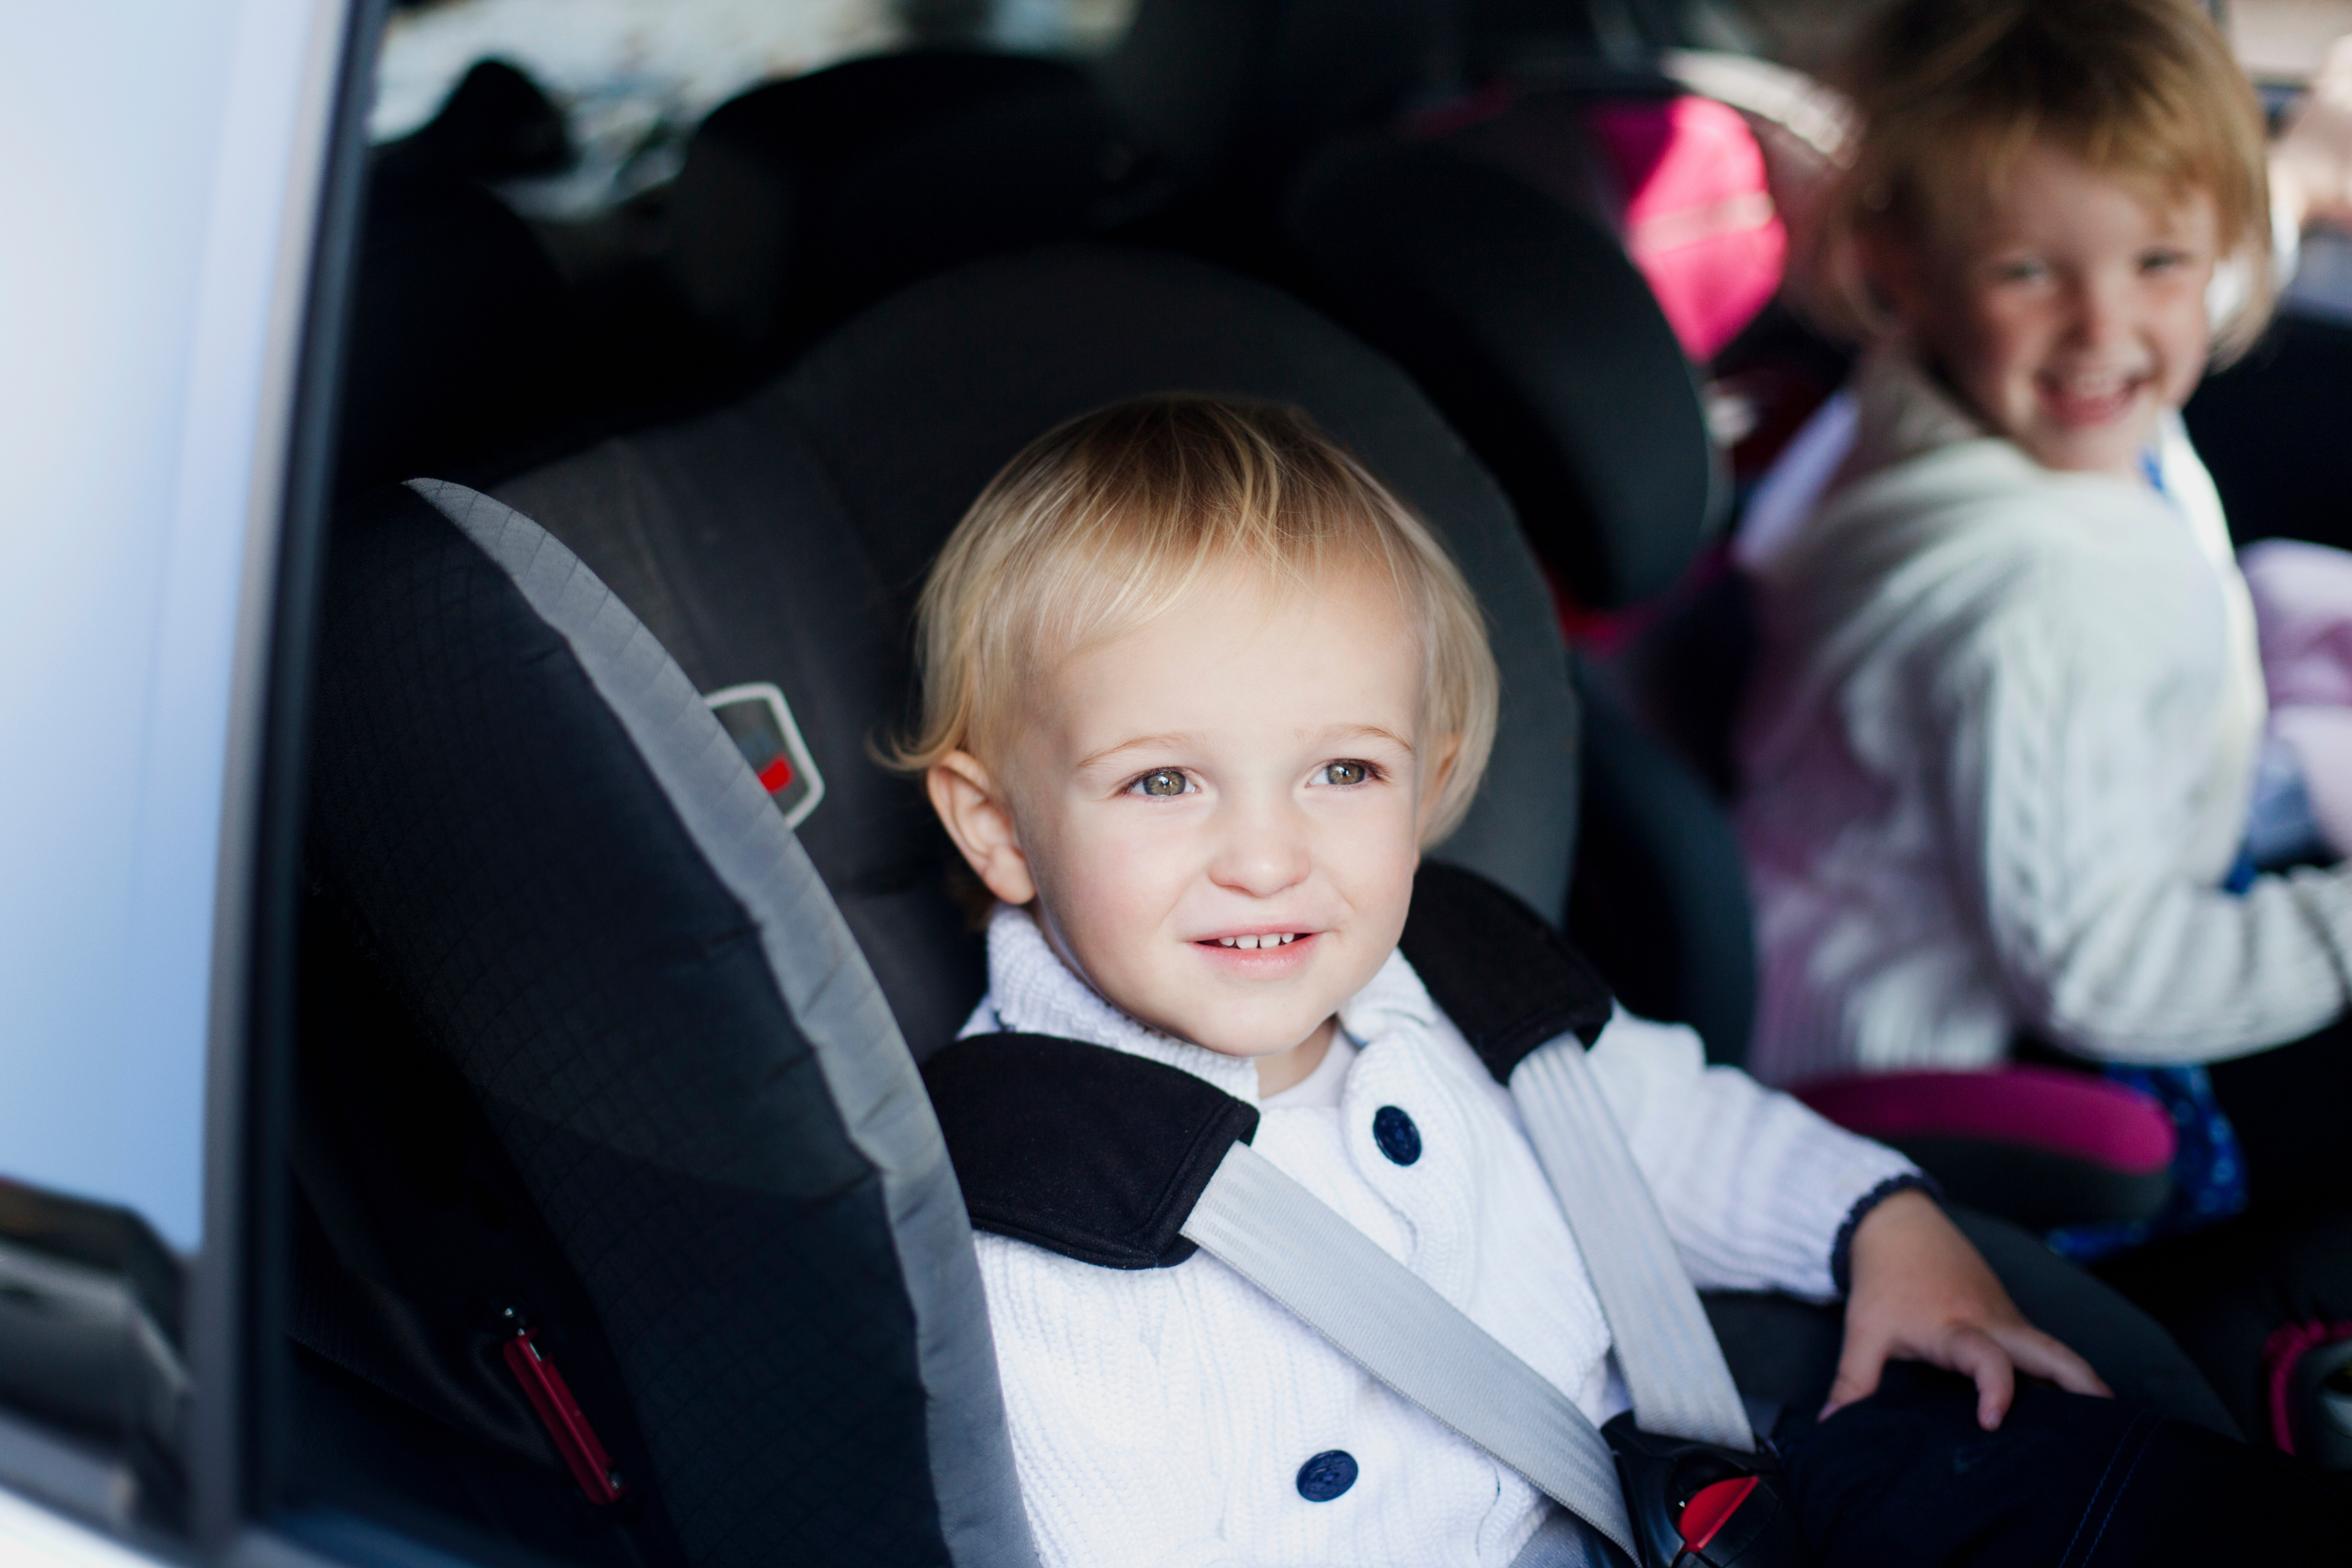 Rear Facing Car Seat Age 4 Uk Car Seat Laws For Babies When Should Your Child Move Out